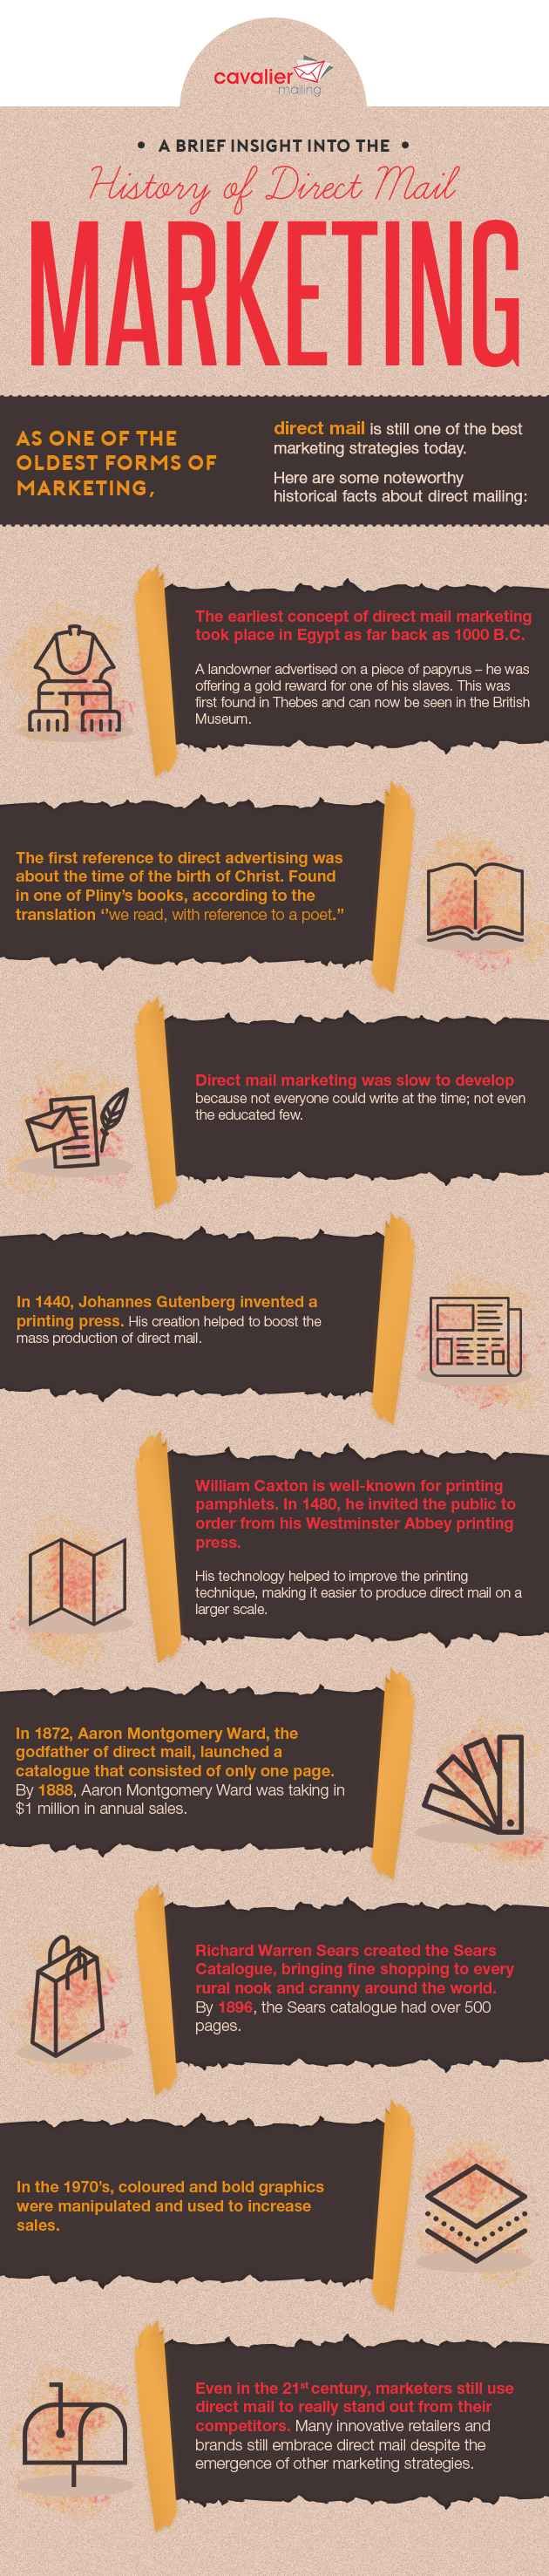 Cavalier Mailing-A Brief Insight into the History of Direct Mail Marketing